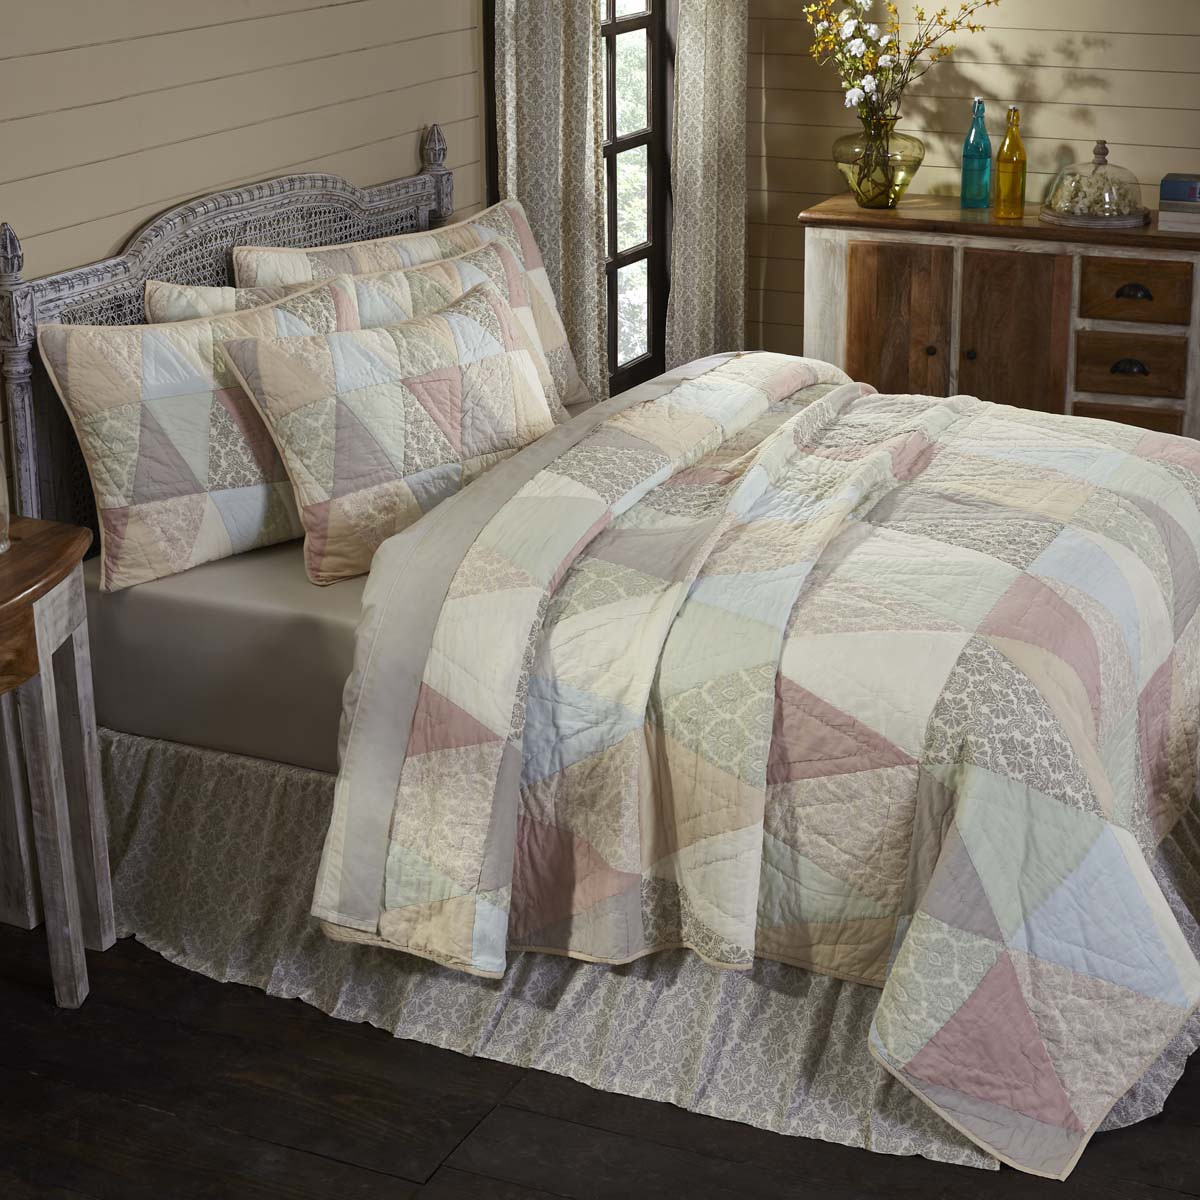 Ava Twin Quilt 68Wx86L